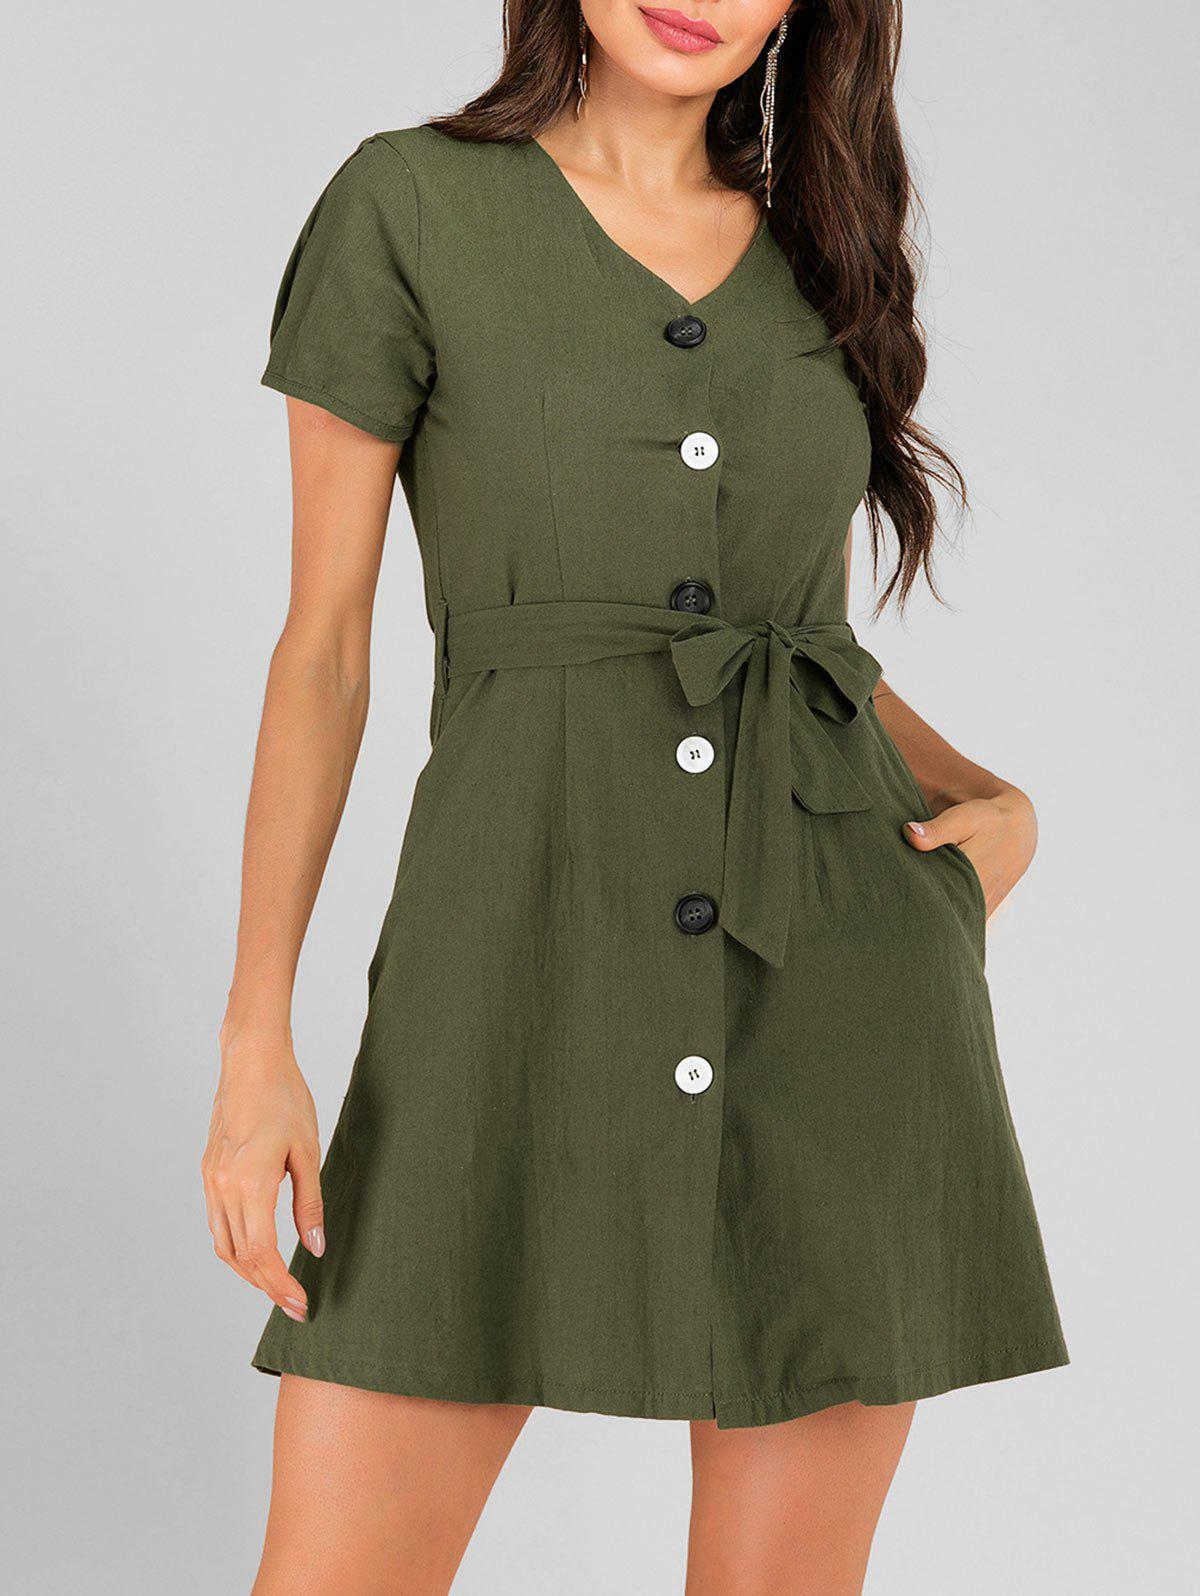 Button Fly Belted Pocket Short Casual Dress - ARMY GREEN XL